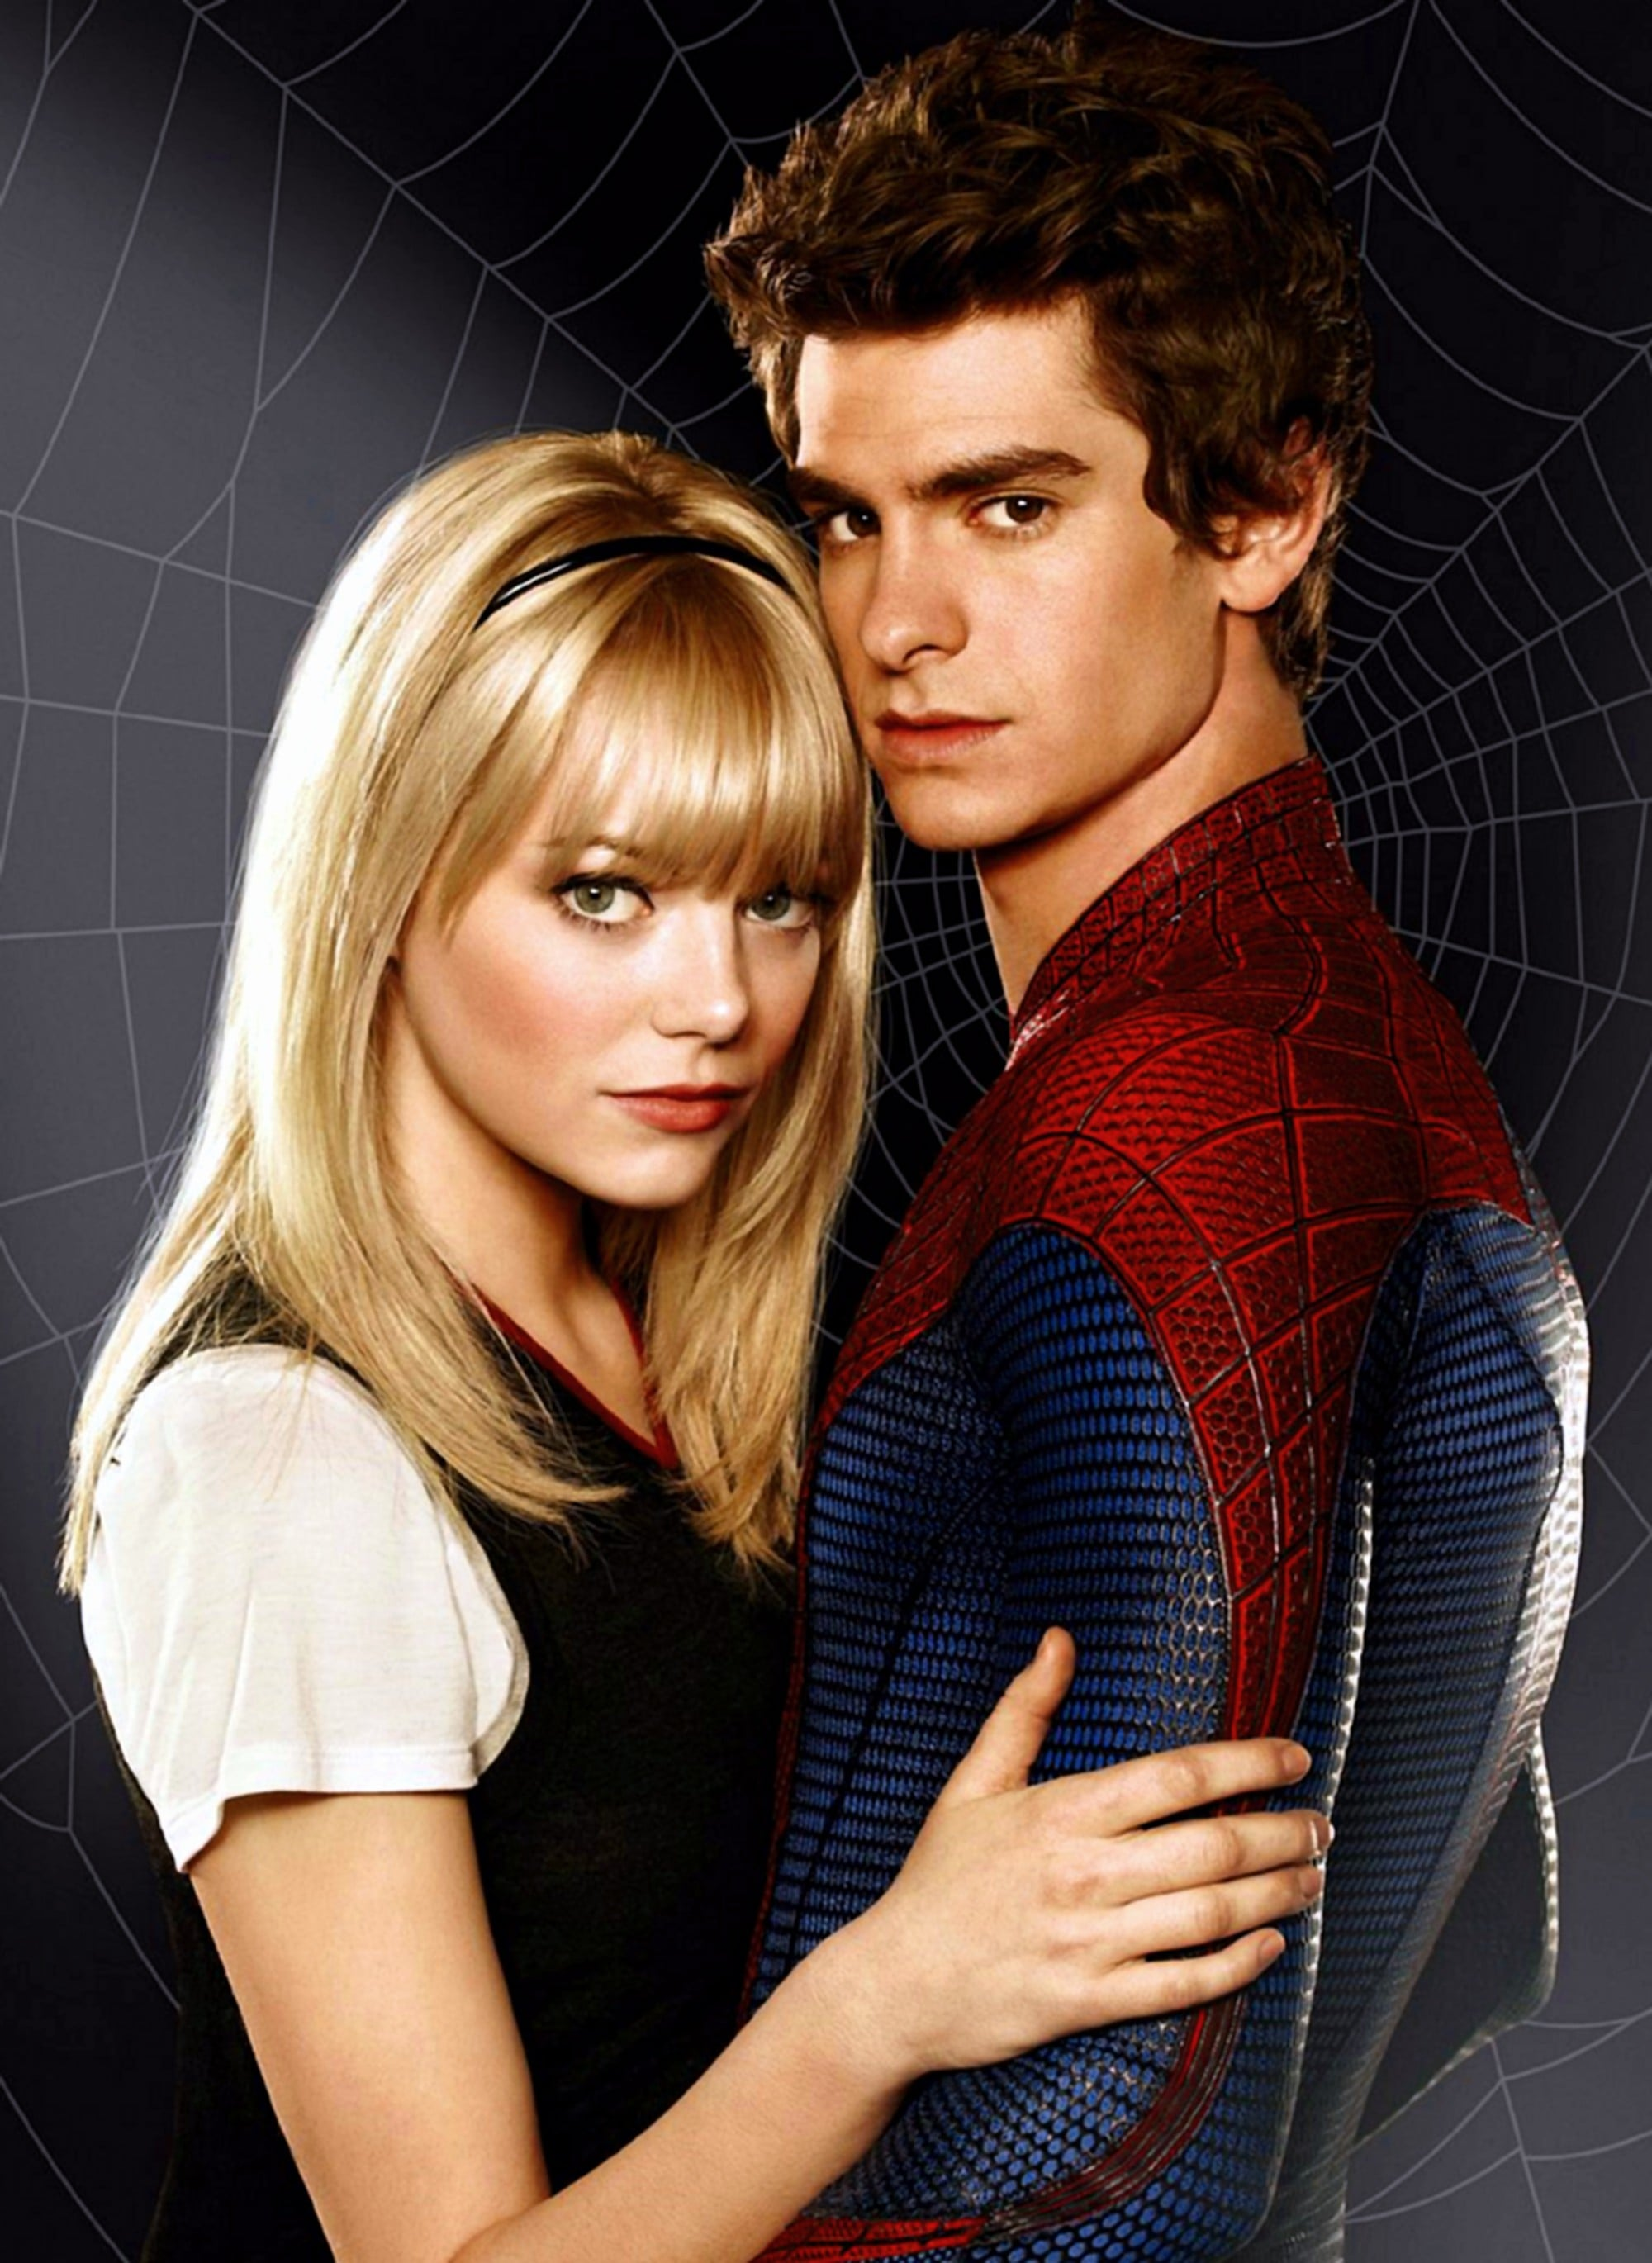 andrew-garfield-and-emma-stone-spiderman-wallpaper-2